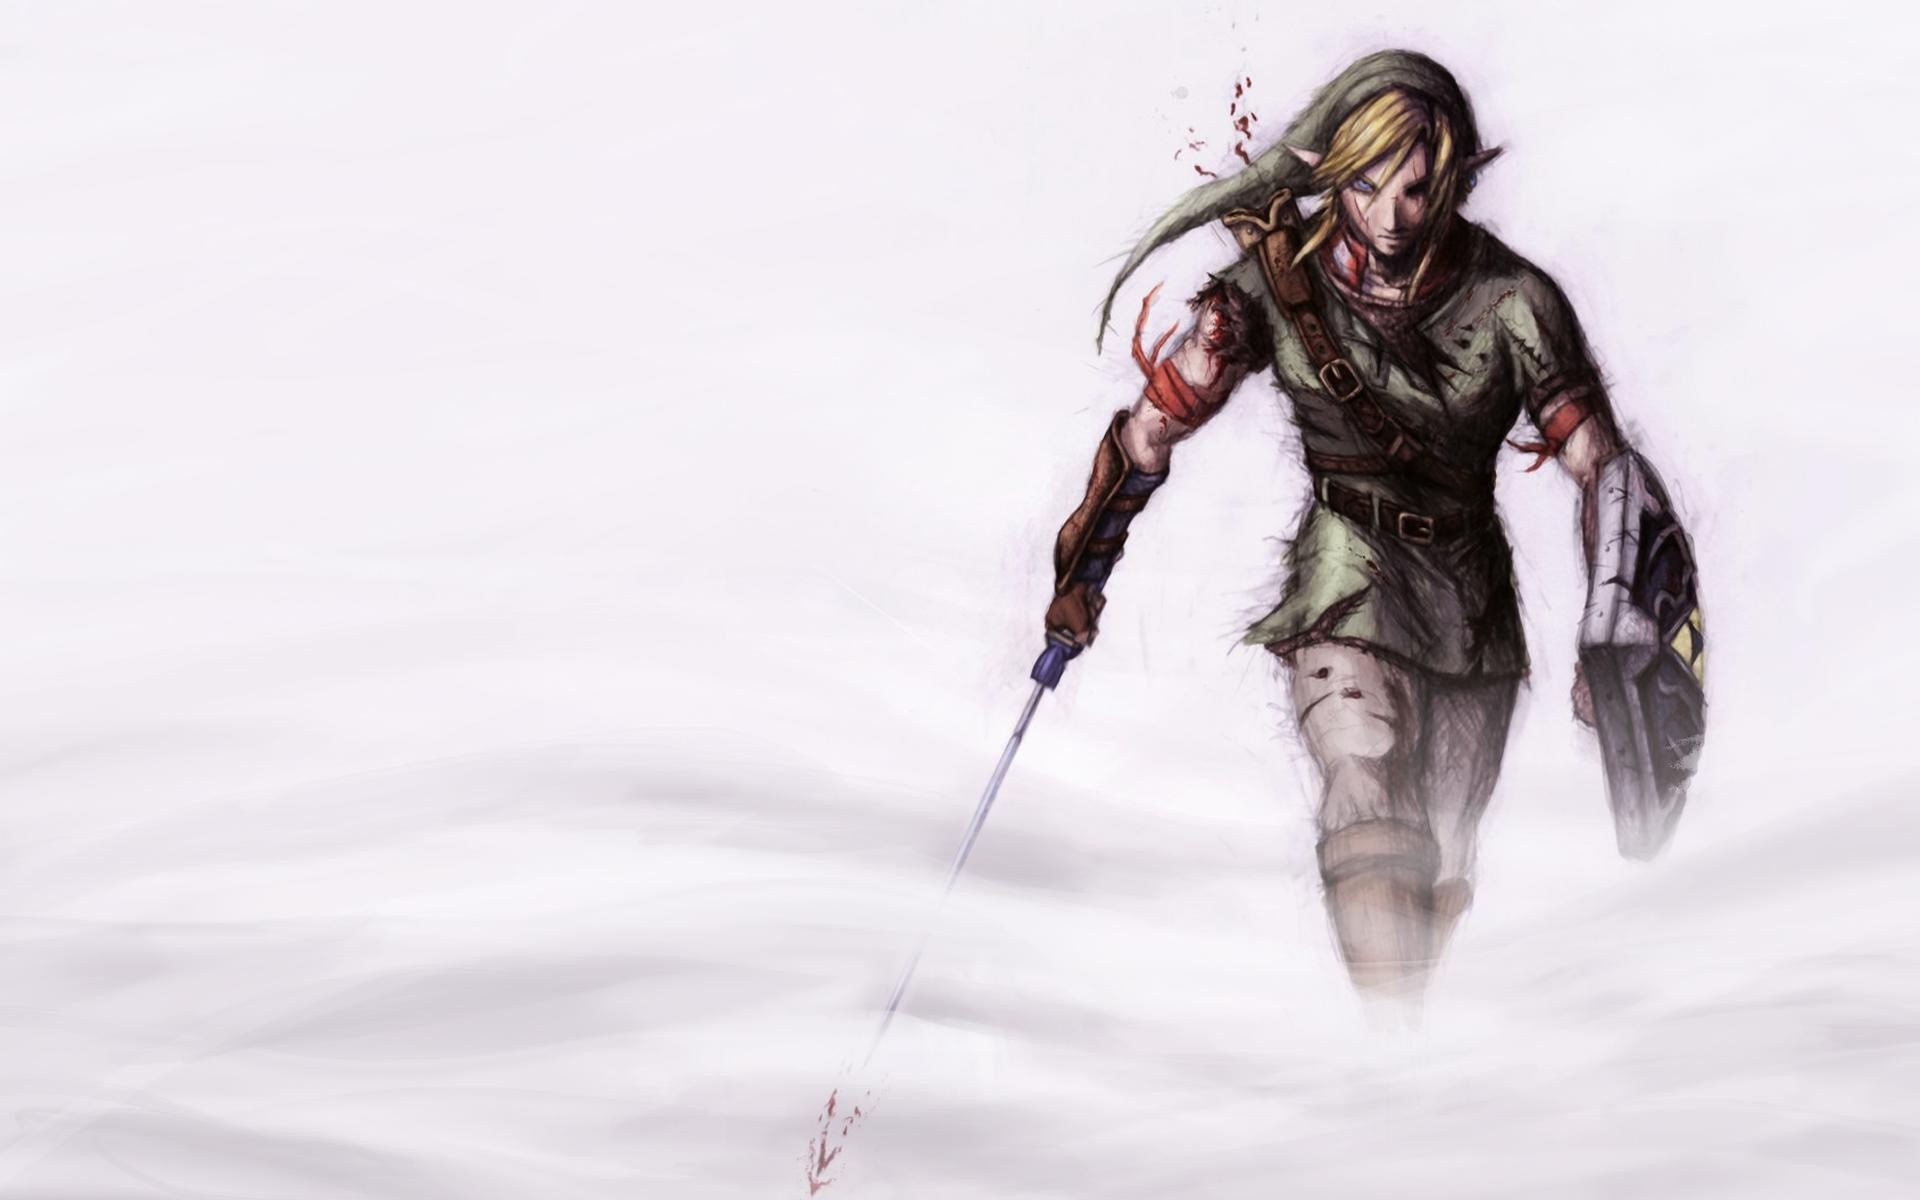 1920x1200 wallpaper de link the legend of zelda Taringa